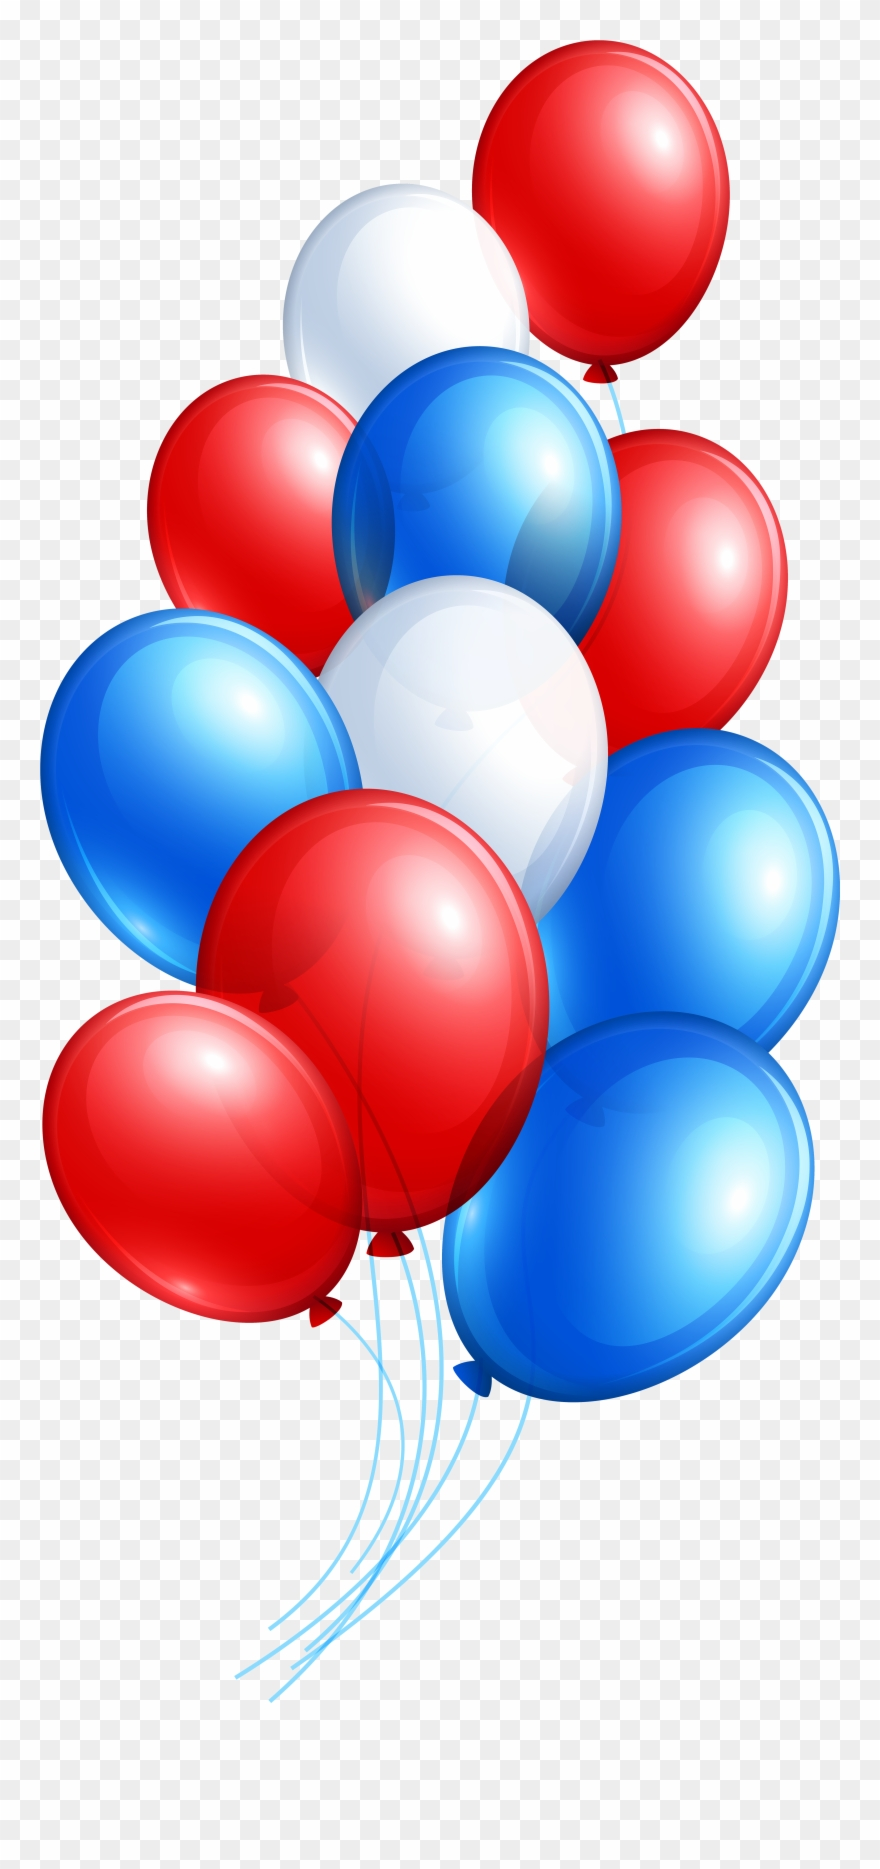 Red And Blue Balloons Transparent Background Clipart (#34545.